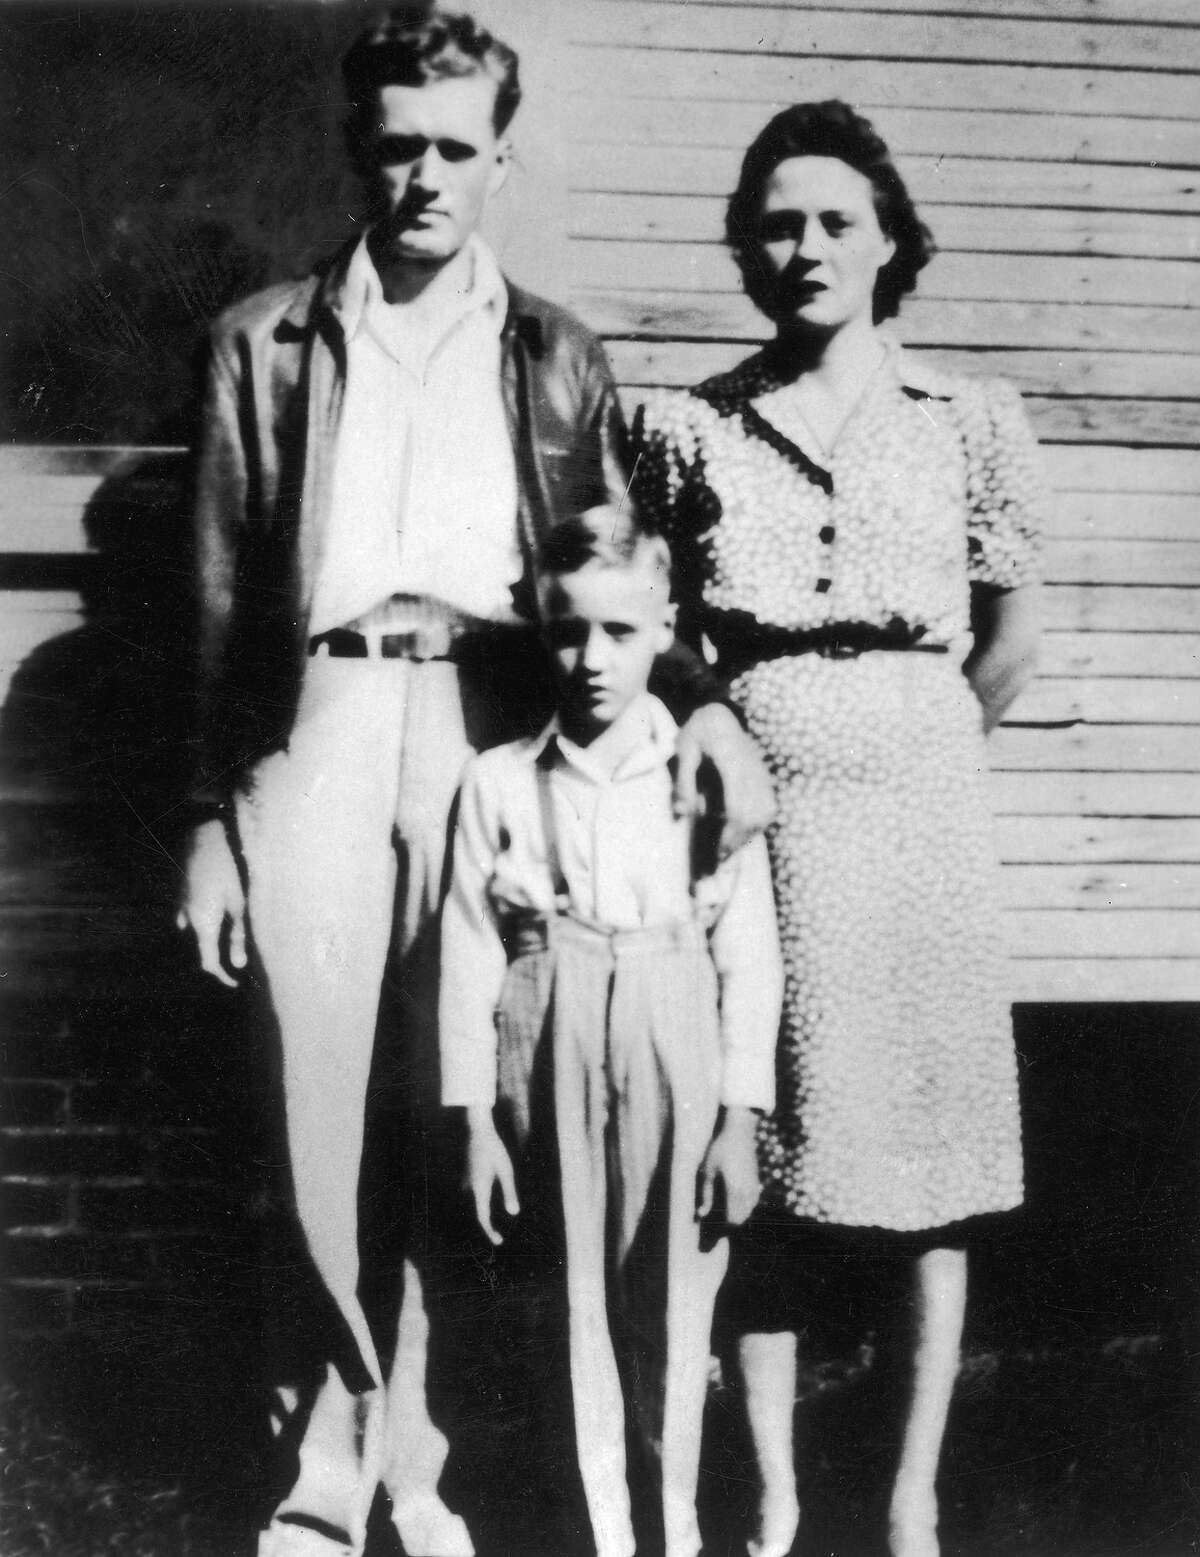 Elvis Presley standing between his parents outside of their home in Tupelo.